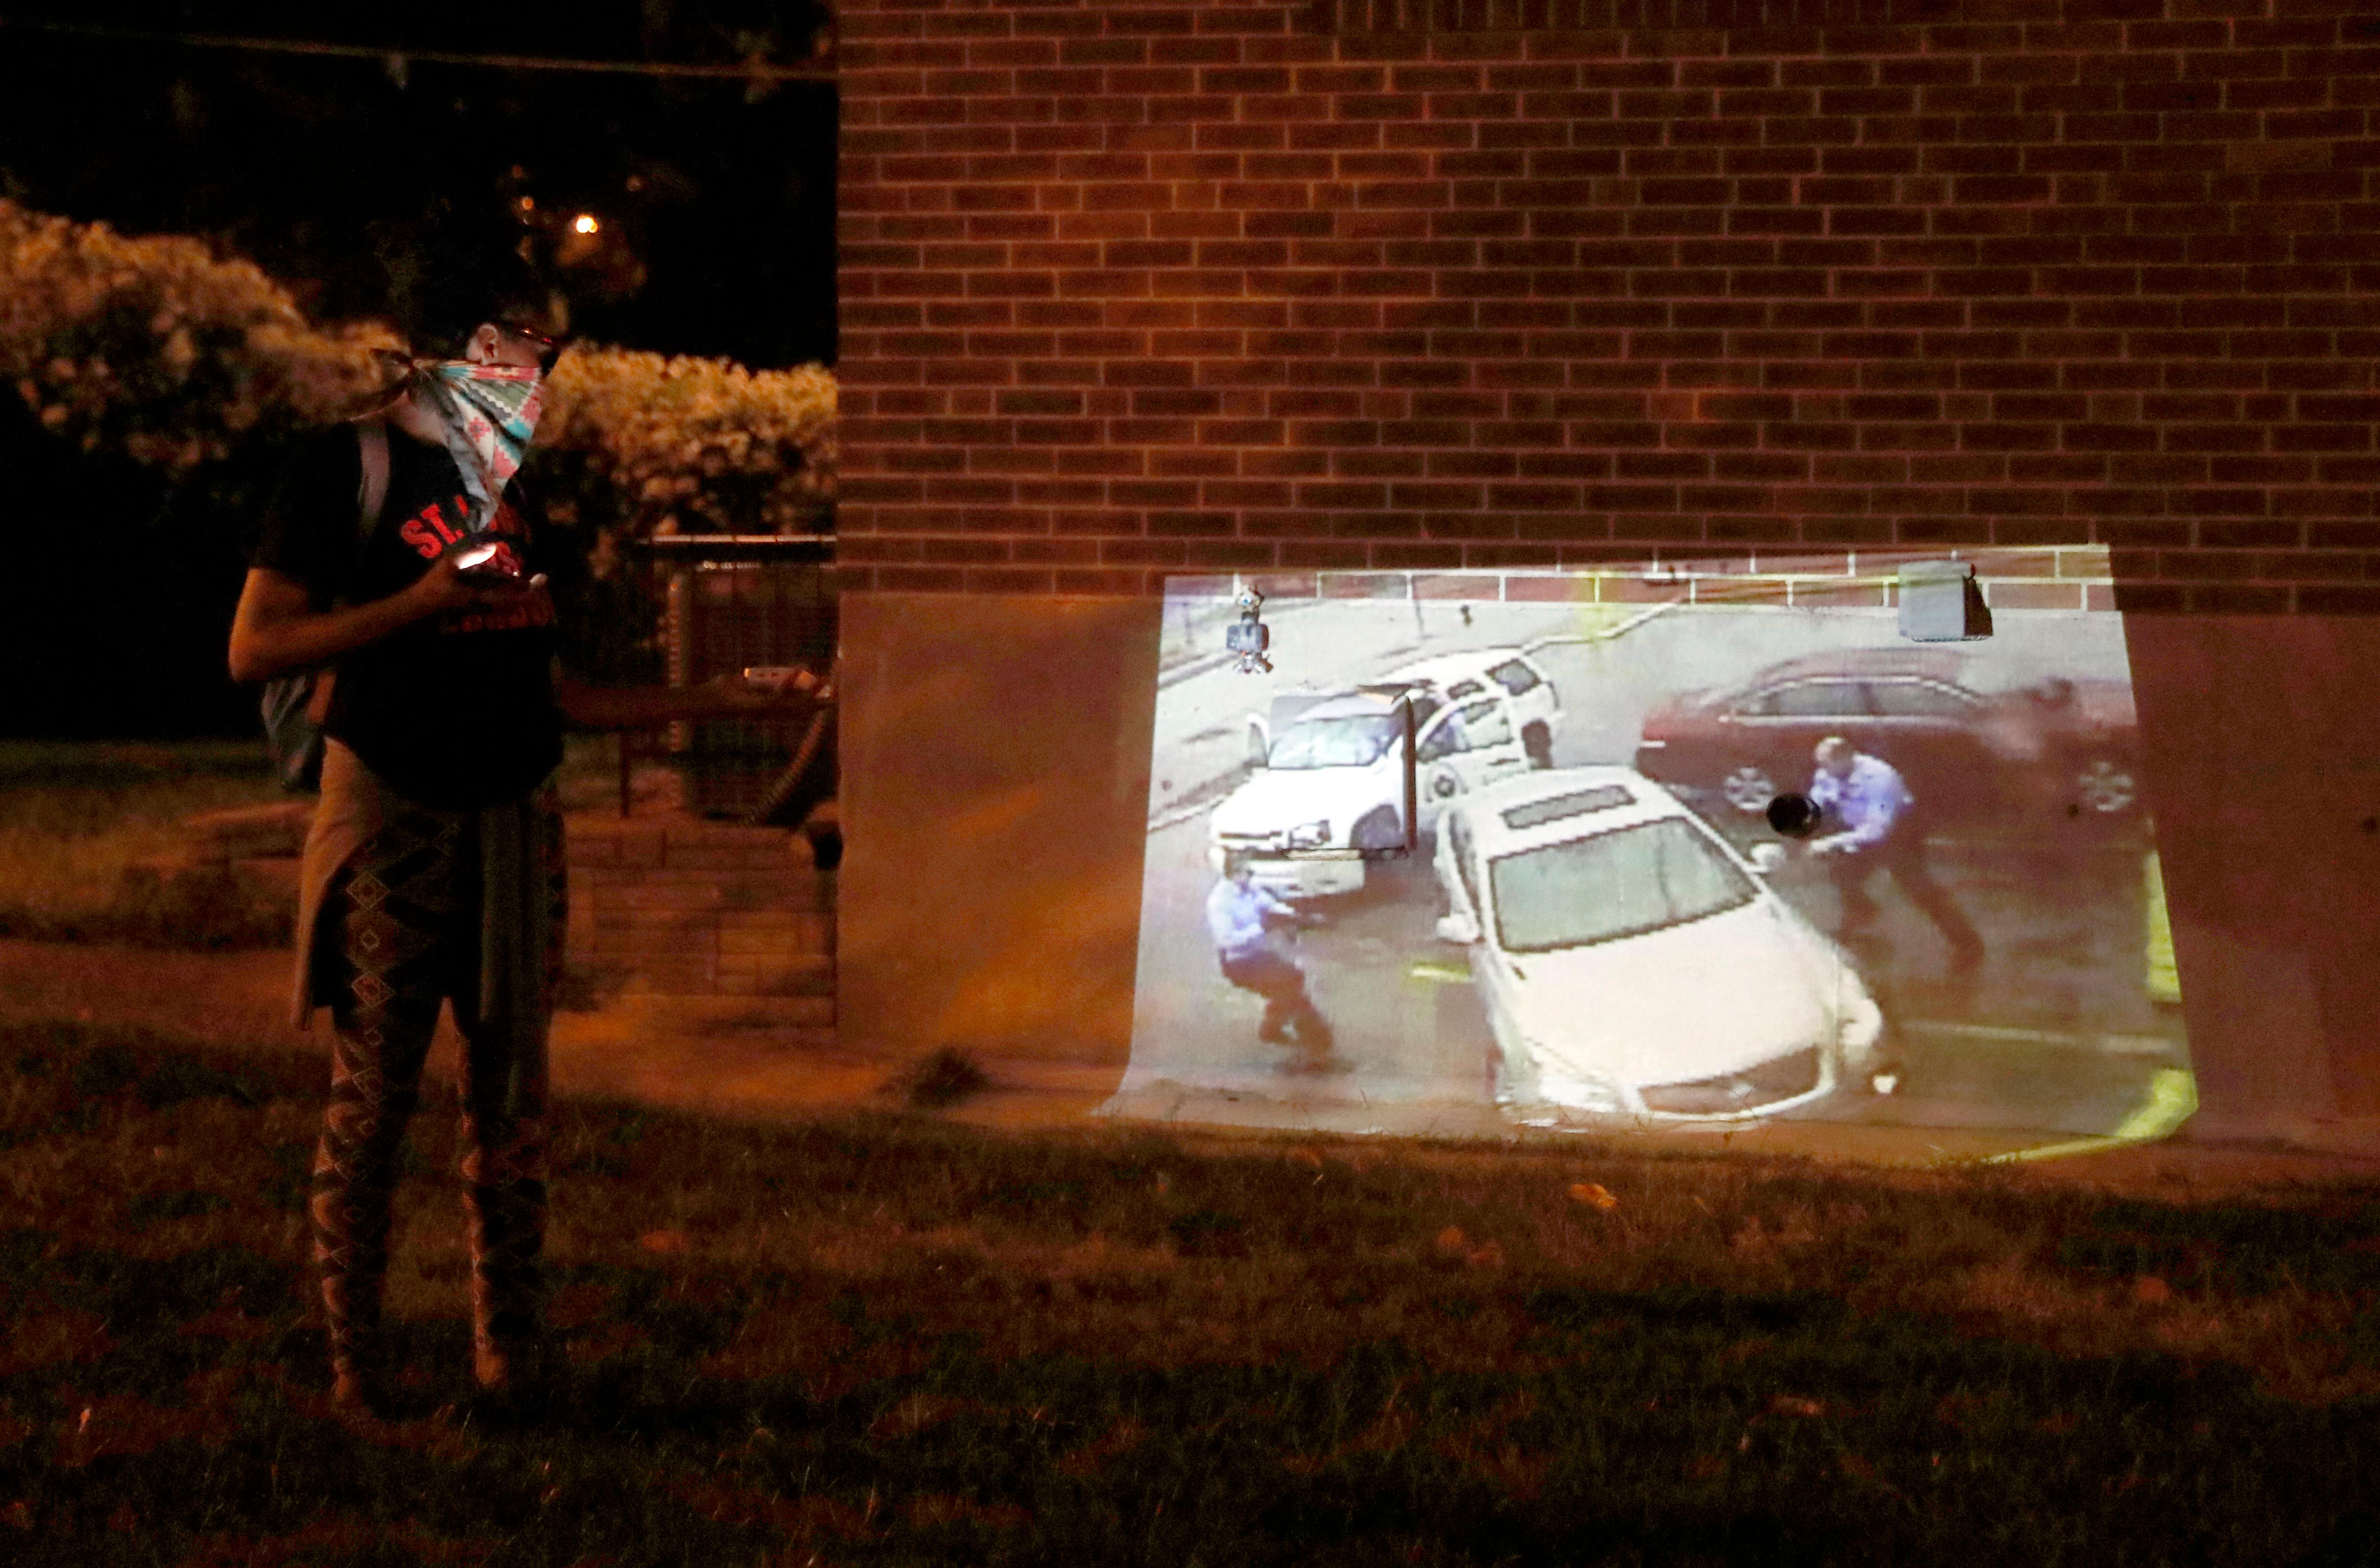 A protester uses a small projector to project images on a house while marching in response to a not guilty verdict in the trial of former St. Louis police officer Jason Stockley Saturday, Sept. 16, 2017, in St. Louis. Stockley was acquitted in the 2011 killing of a black man following a high-speed chase. (AP Photo/Jeff Roberson)